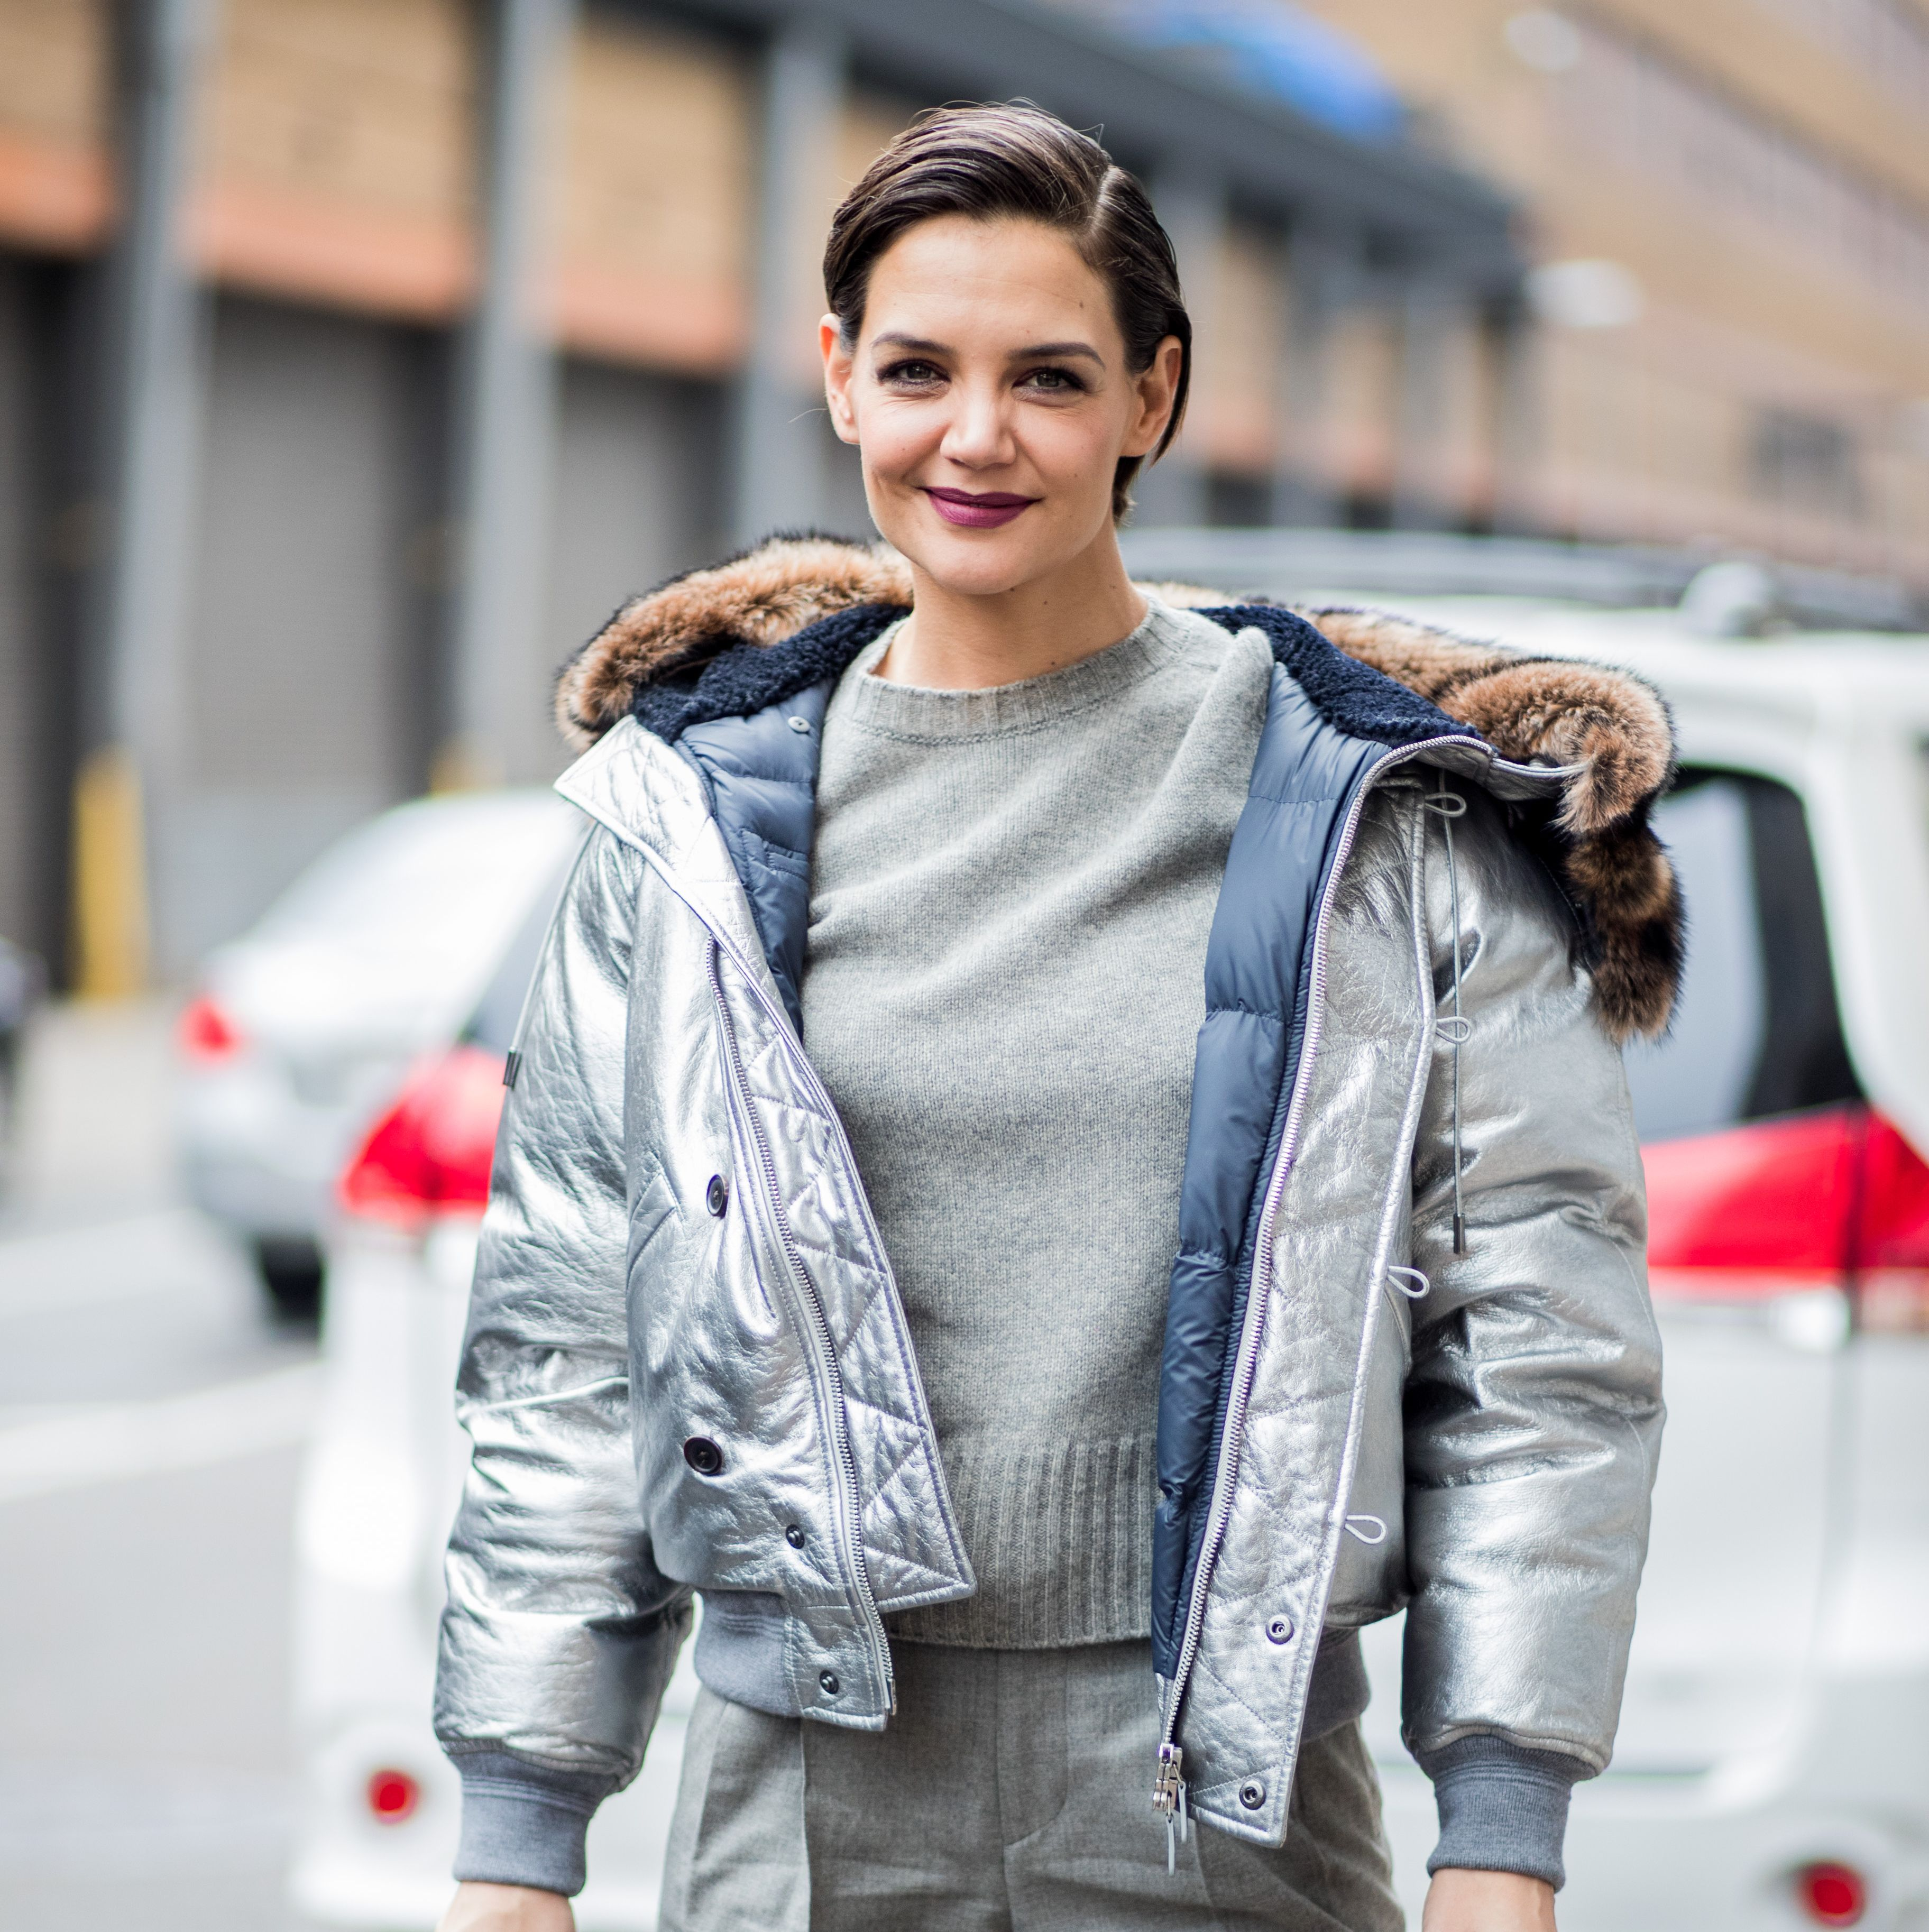 Katie Holmes Shares the Most Gorgeous Slow-Motion Video of Herself in a Snow Storm